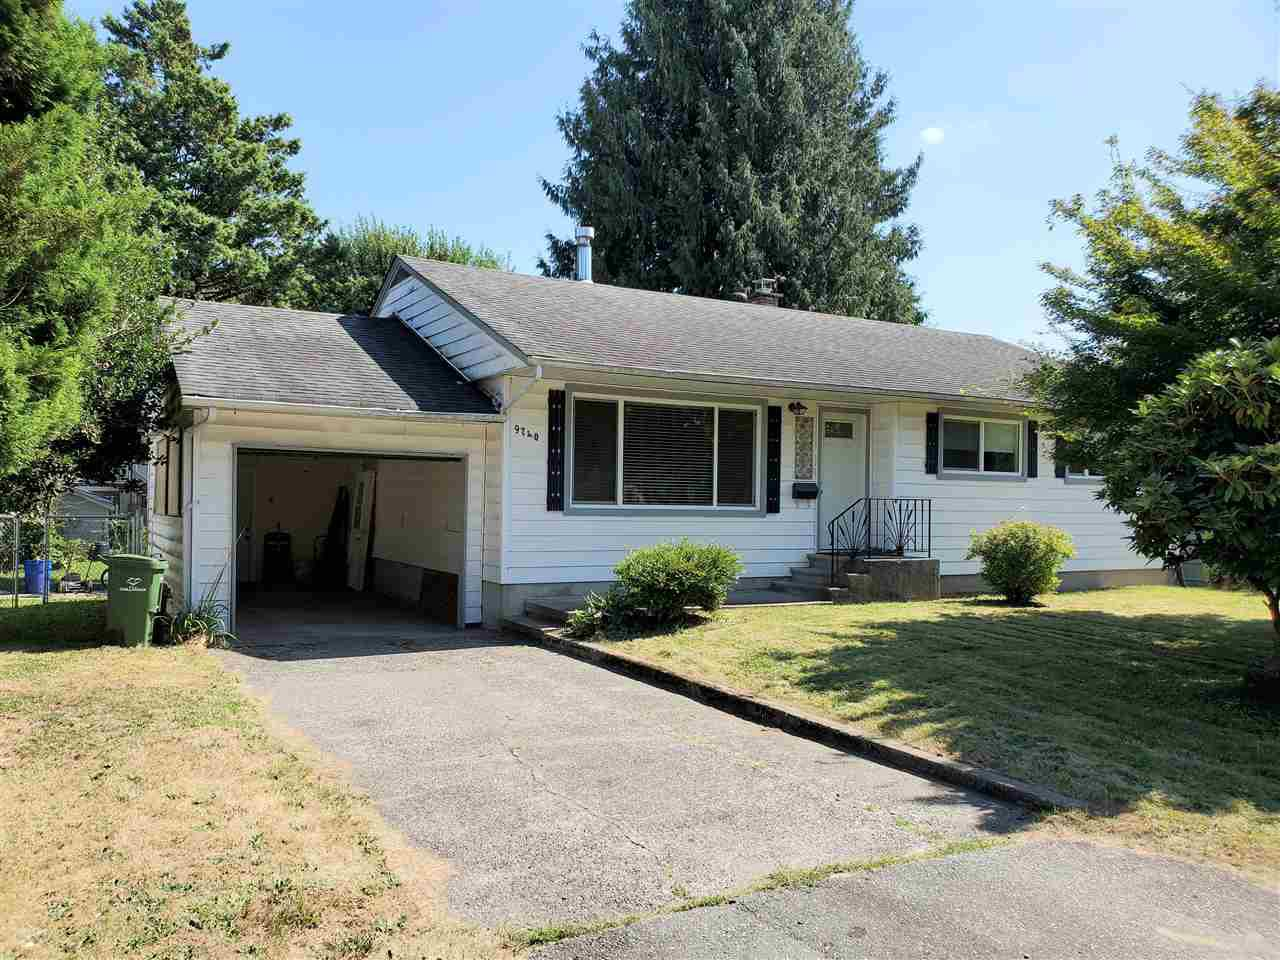 Main Photo: 9740 CARLETON Street in Chilliwack: Chilliwack E Young-Yale House for sale : MLS®# R2492691